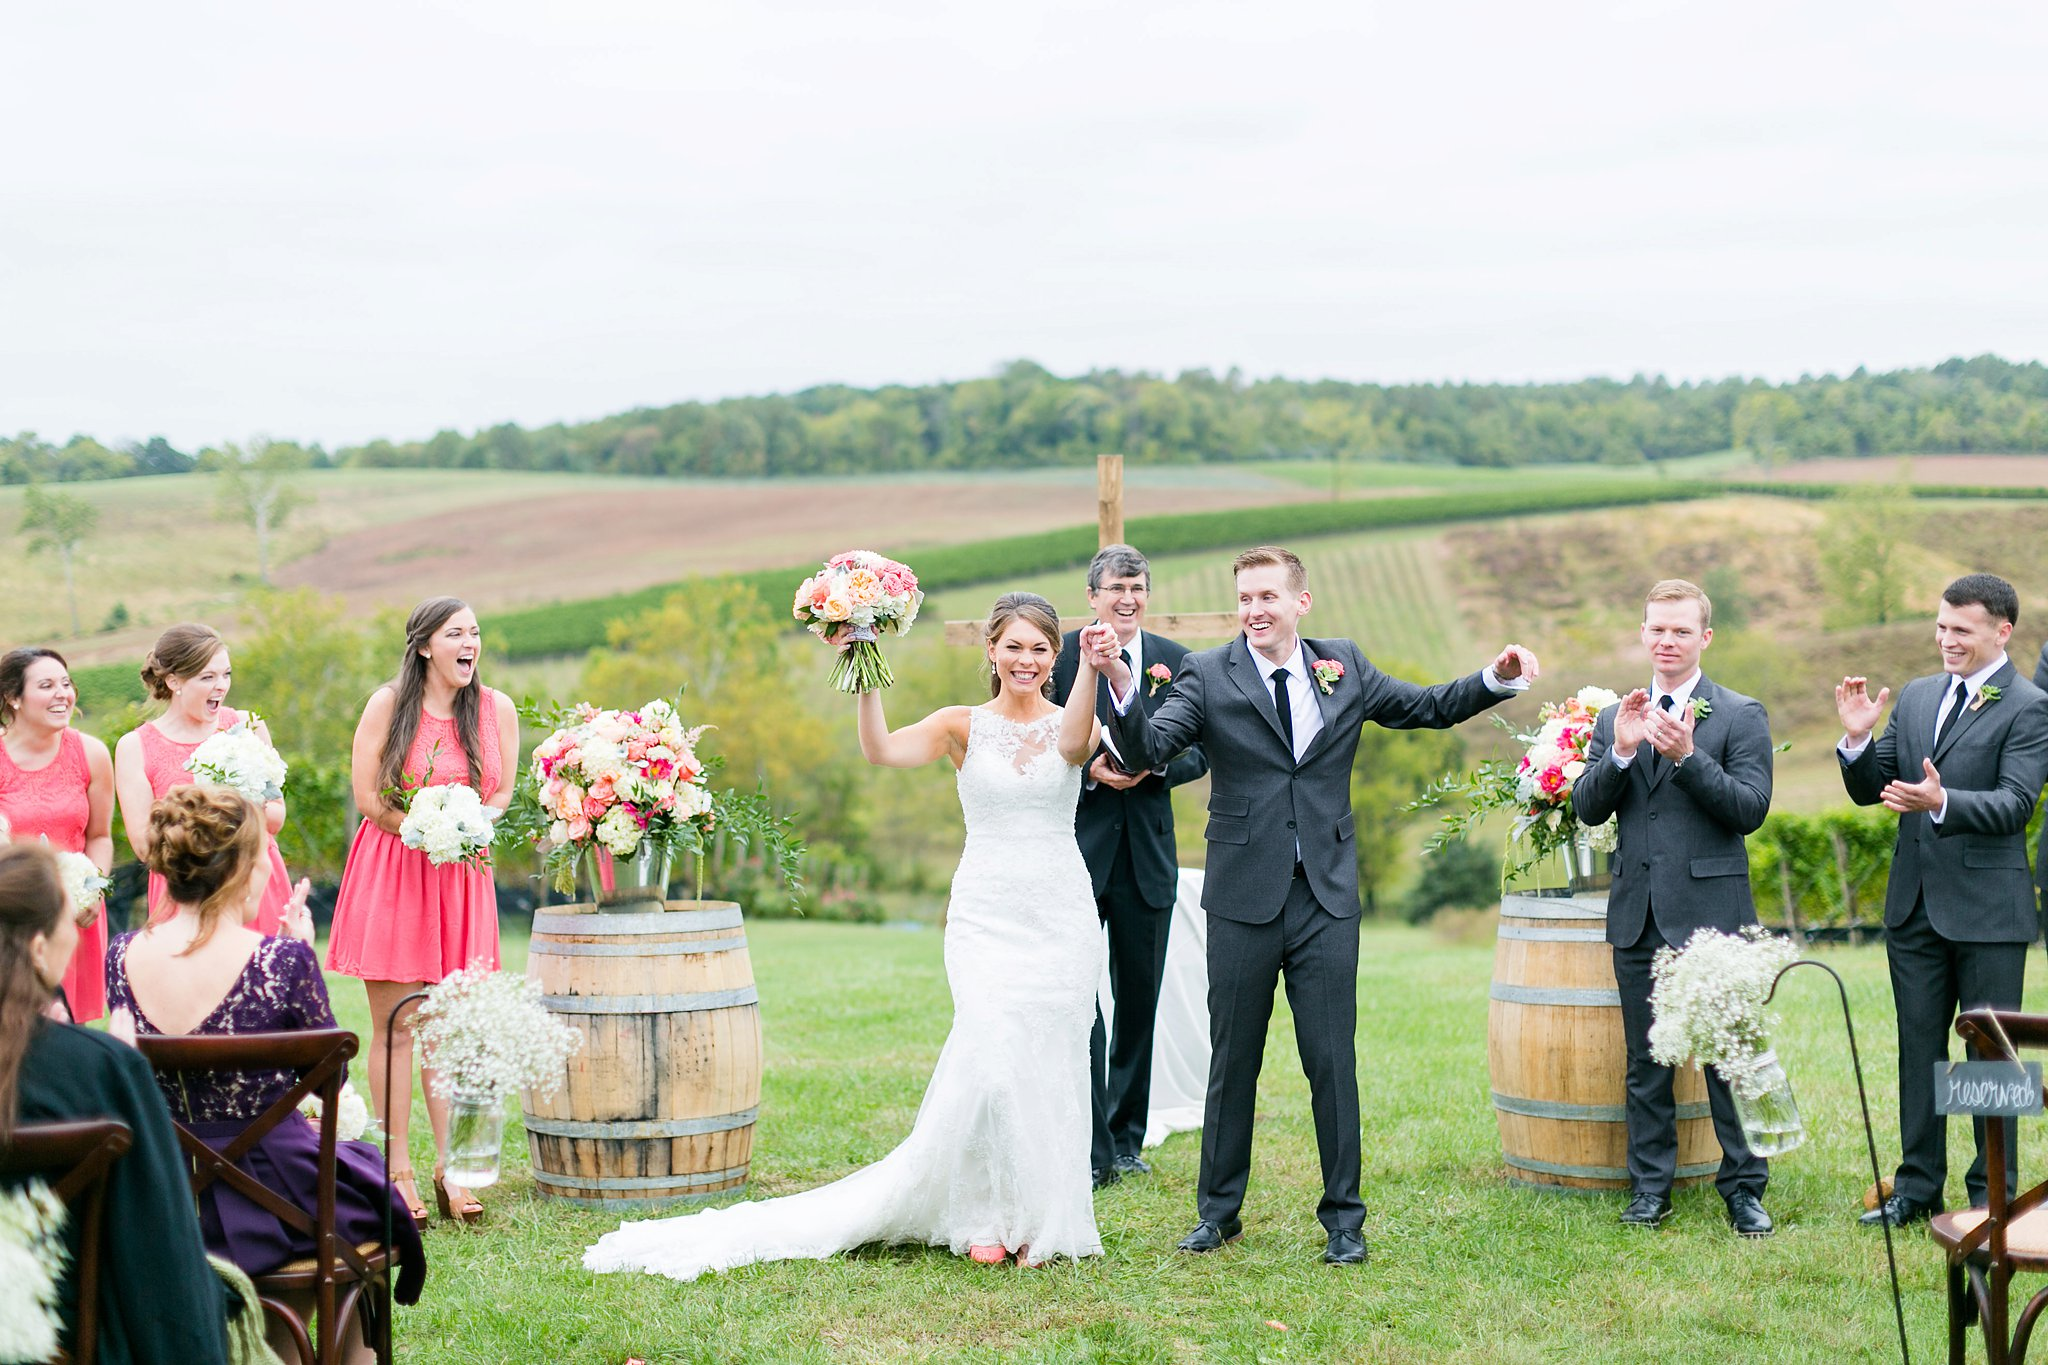 Stone Tower Winery Wedding Photos Virginia Wedding Photographer Megan Kelsey Photography Sam & Angela-164.jpg